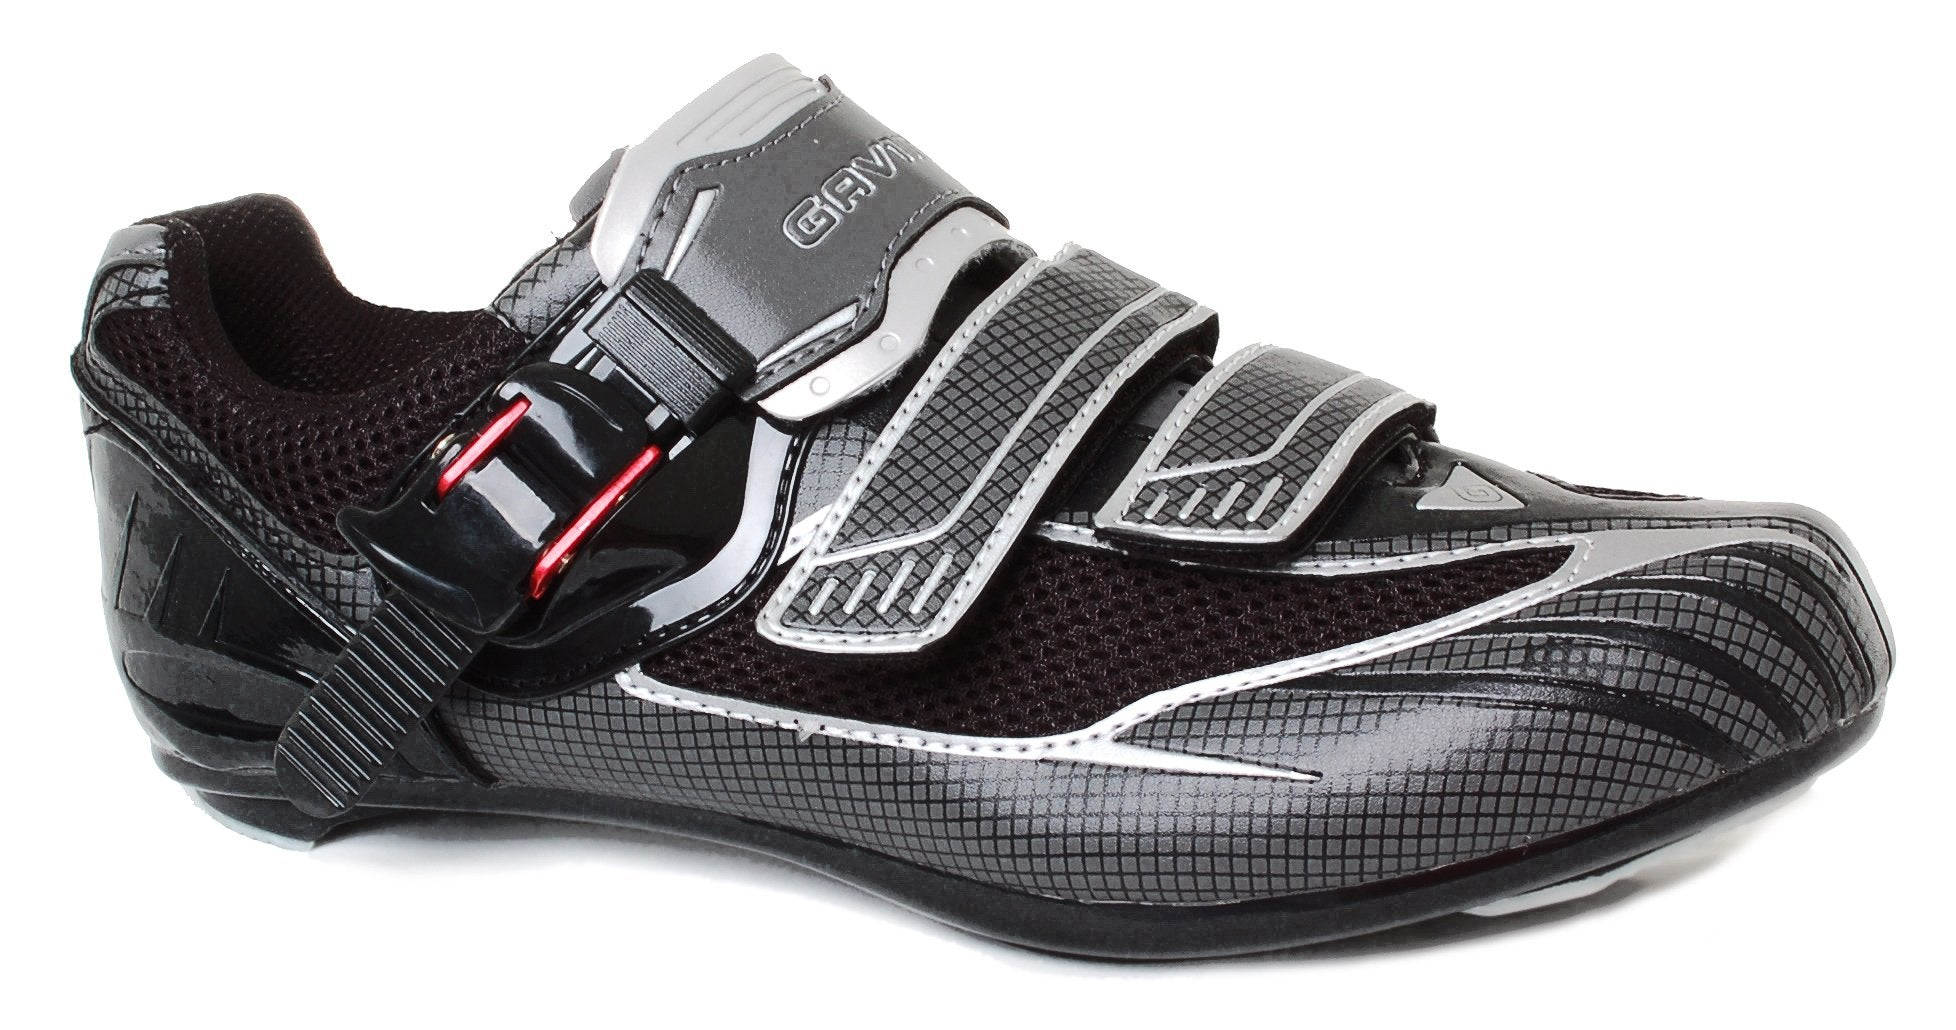 Quick Lace 3 Bolt Road Cleat Compatible Gavin Pro Road Cycling Shoe